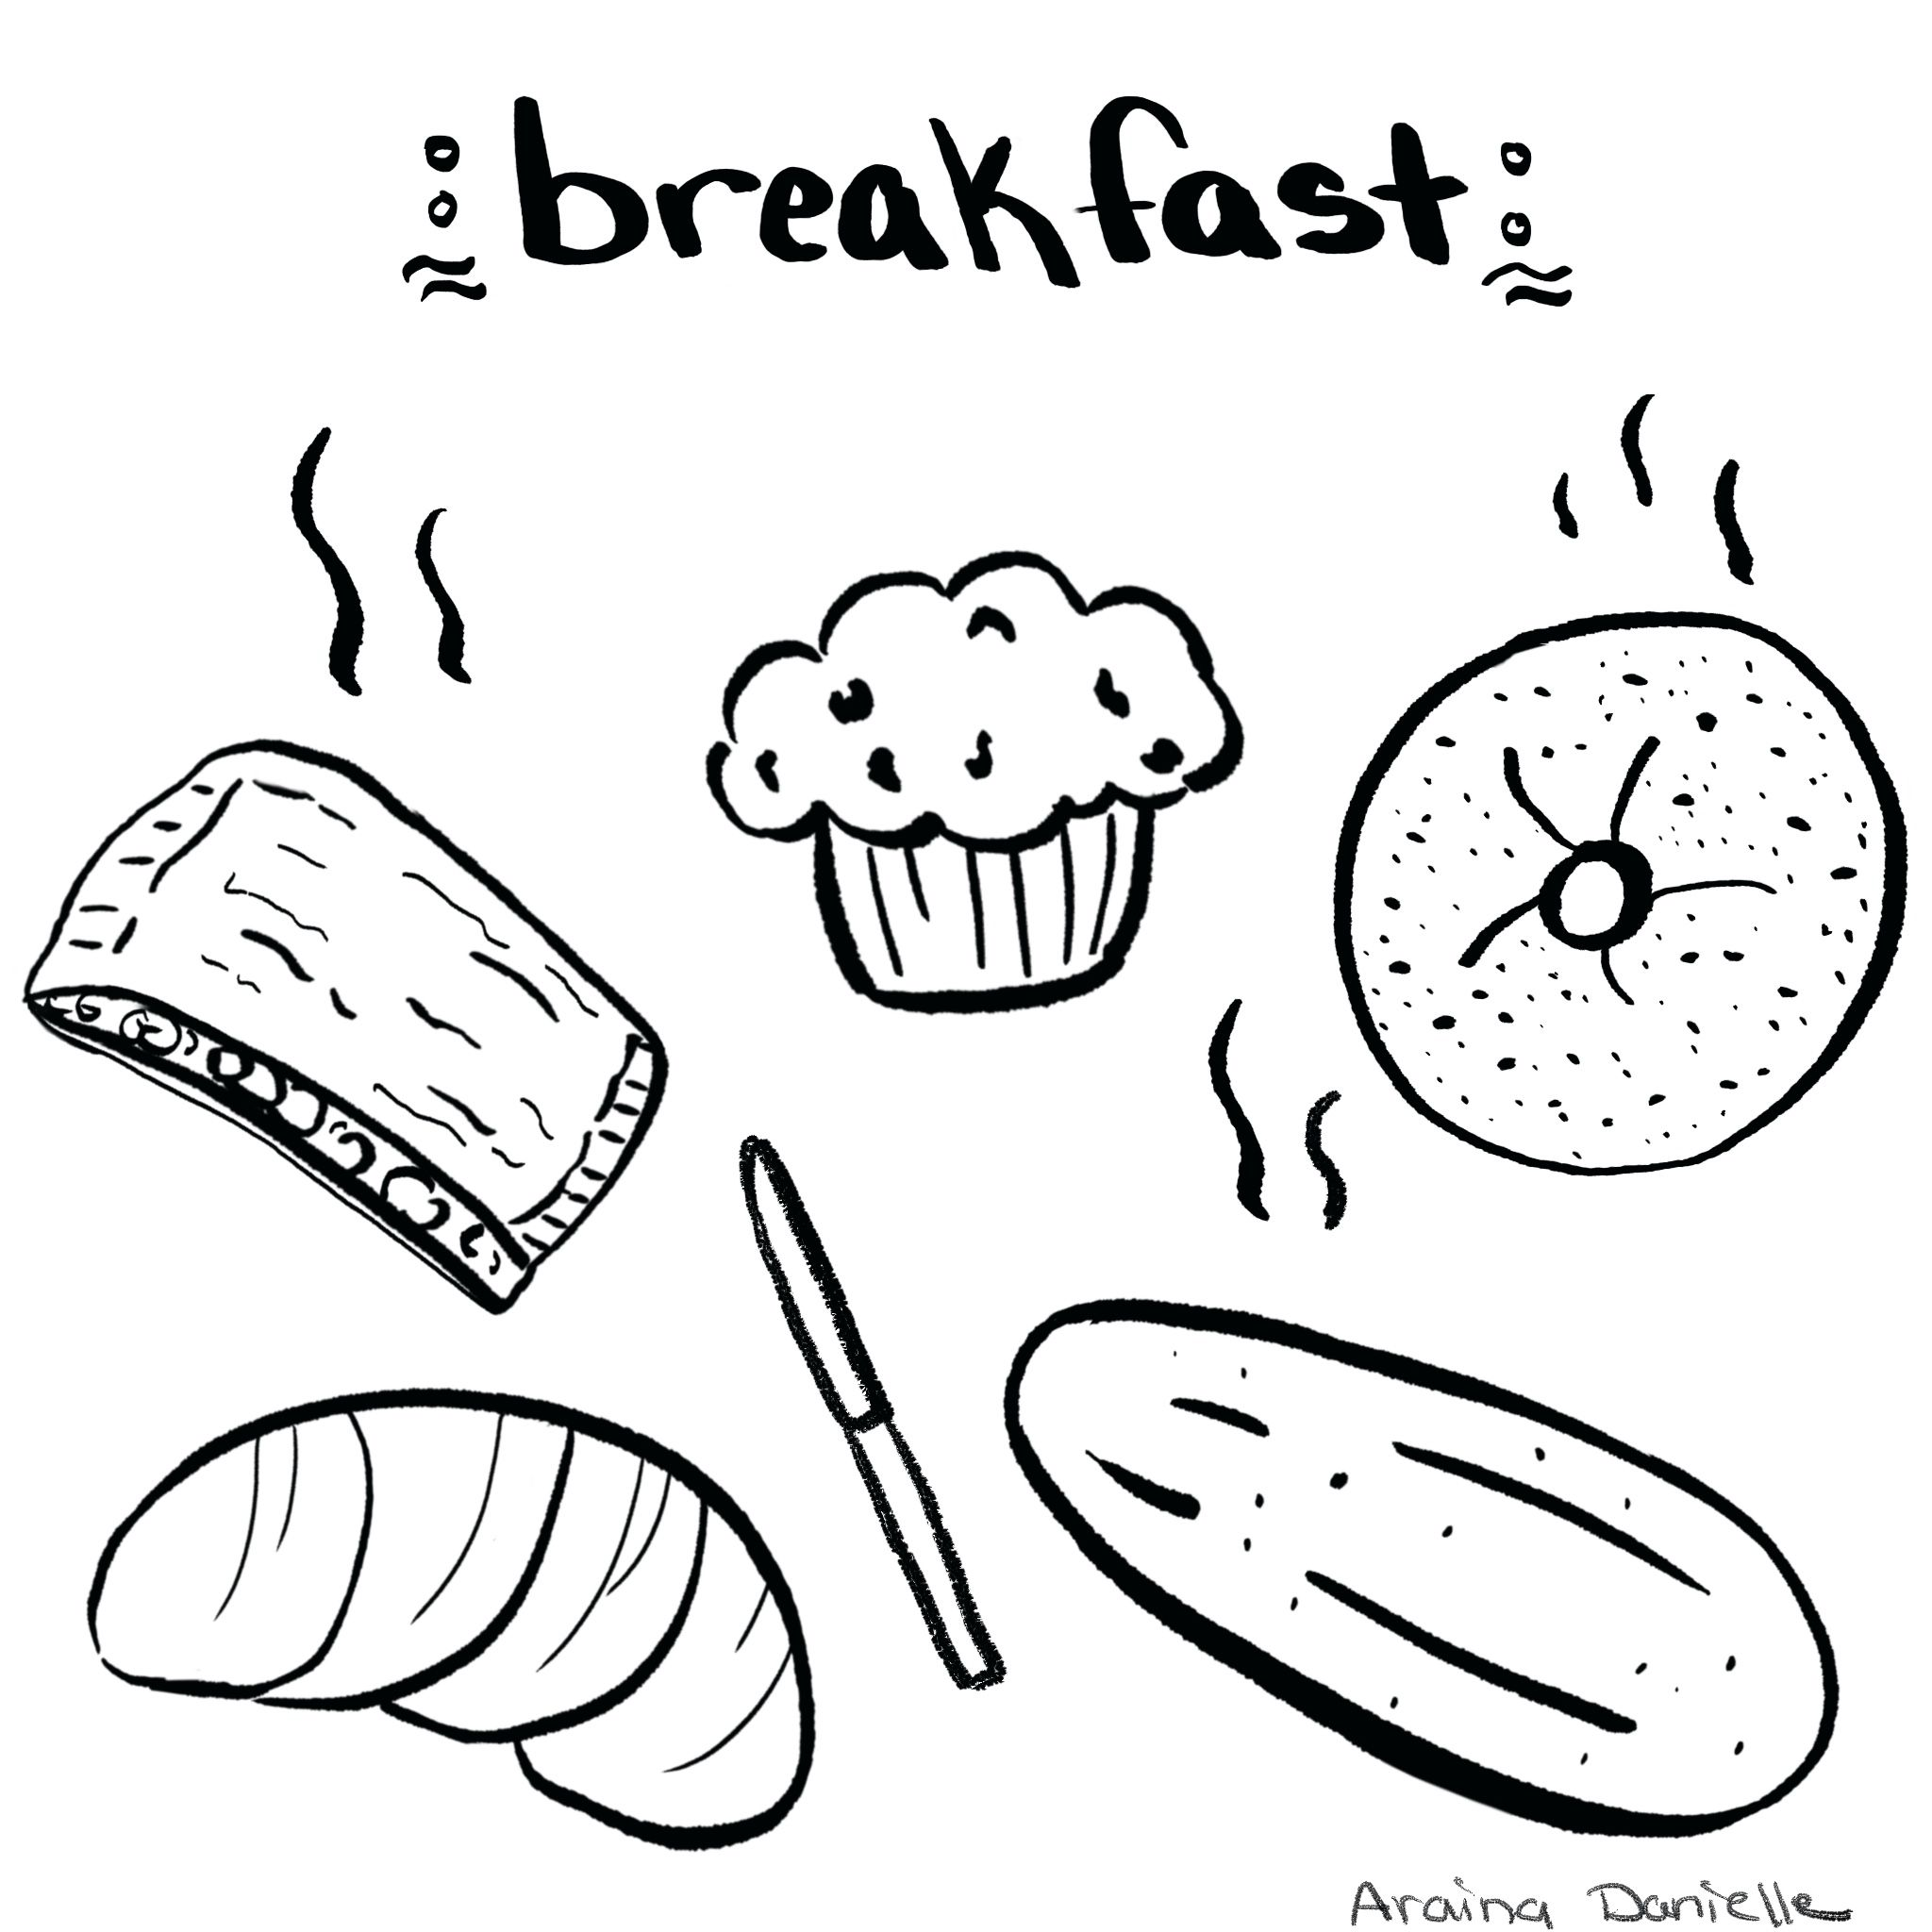 Breakfast Black And White Illustrations Bagels Croissants